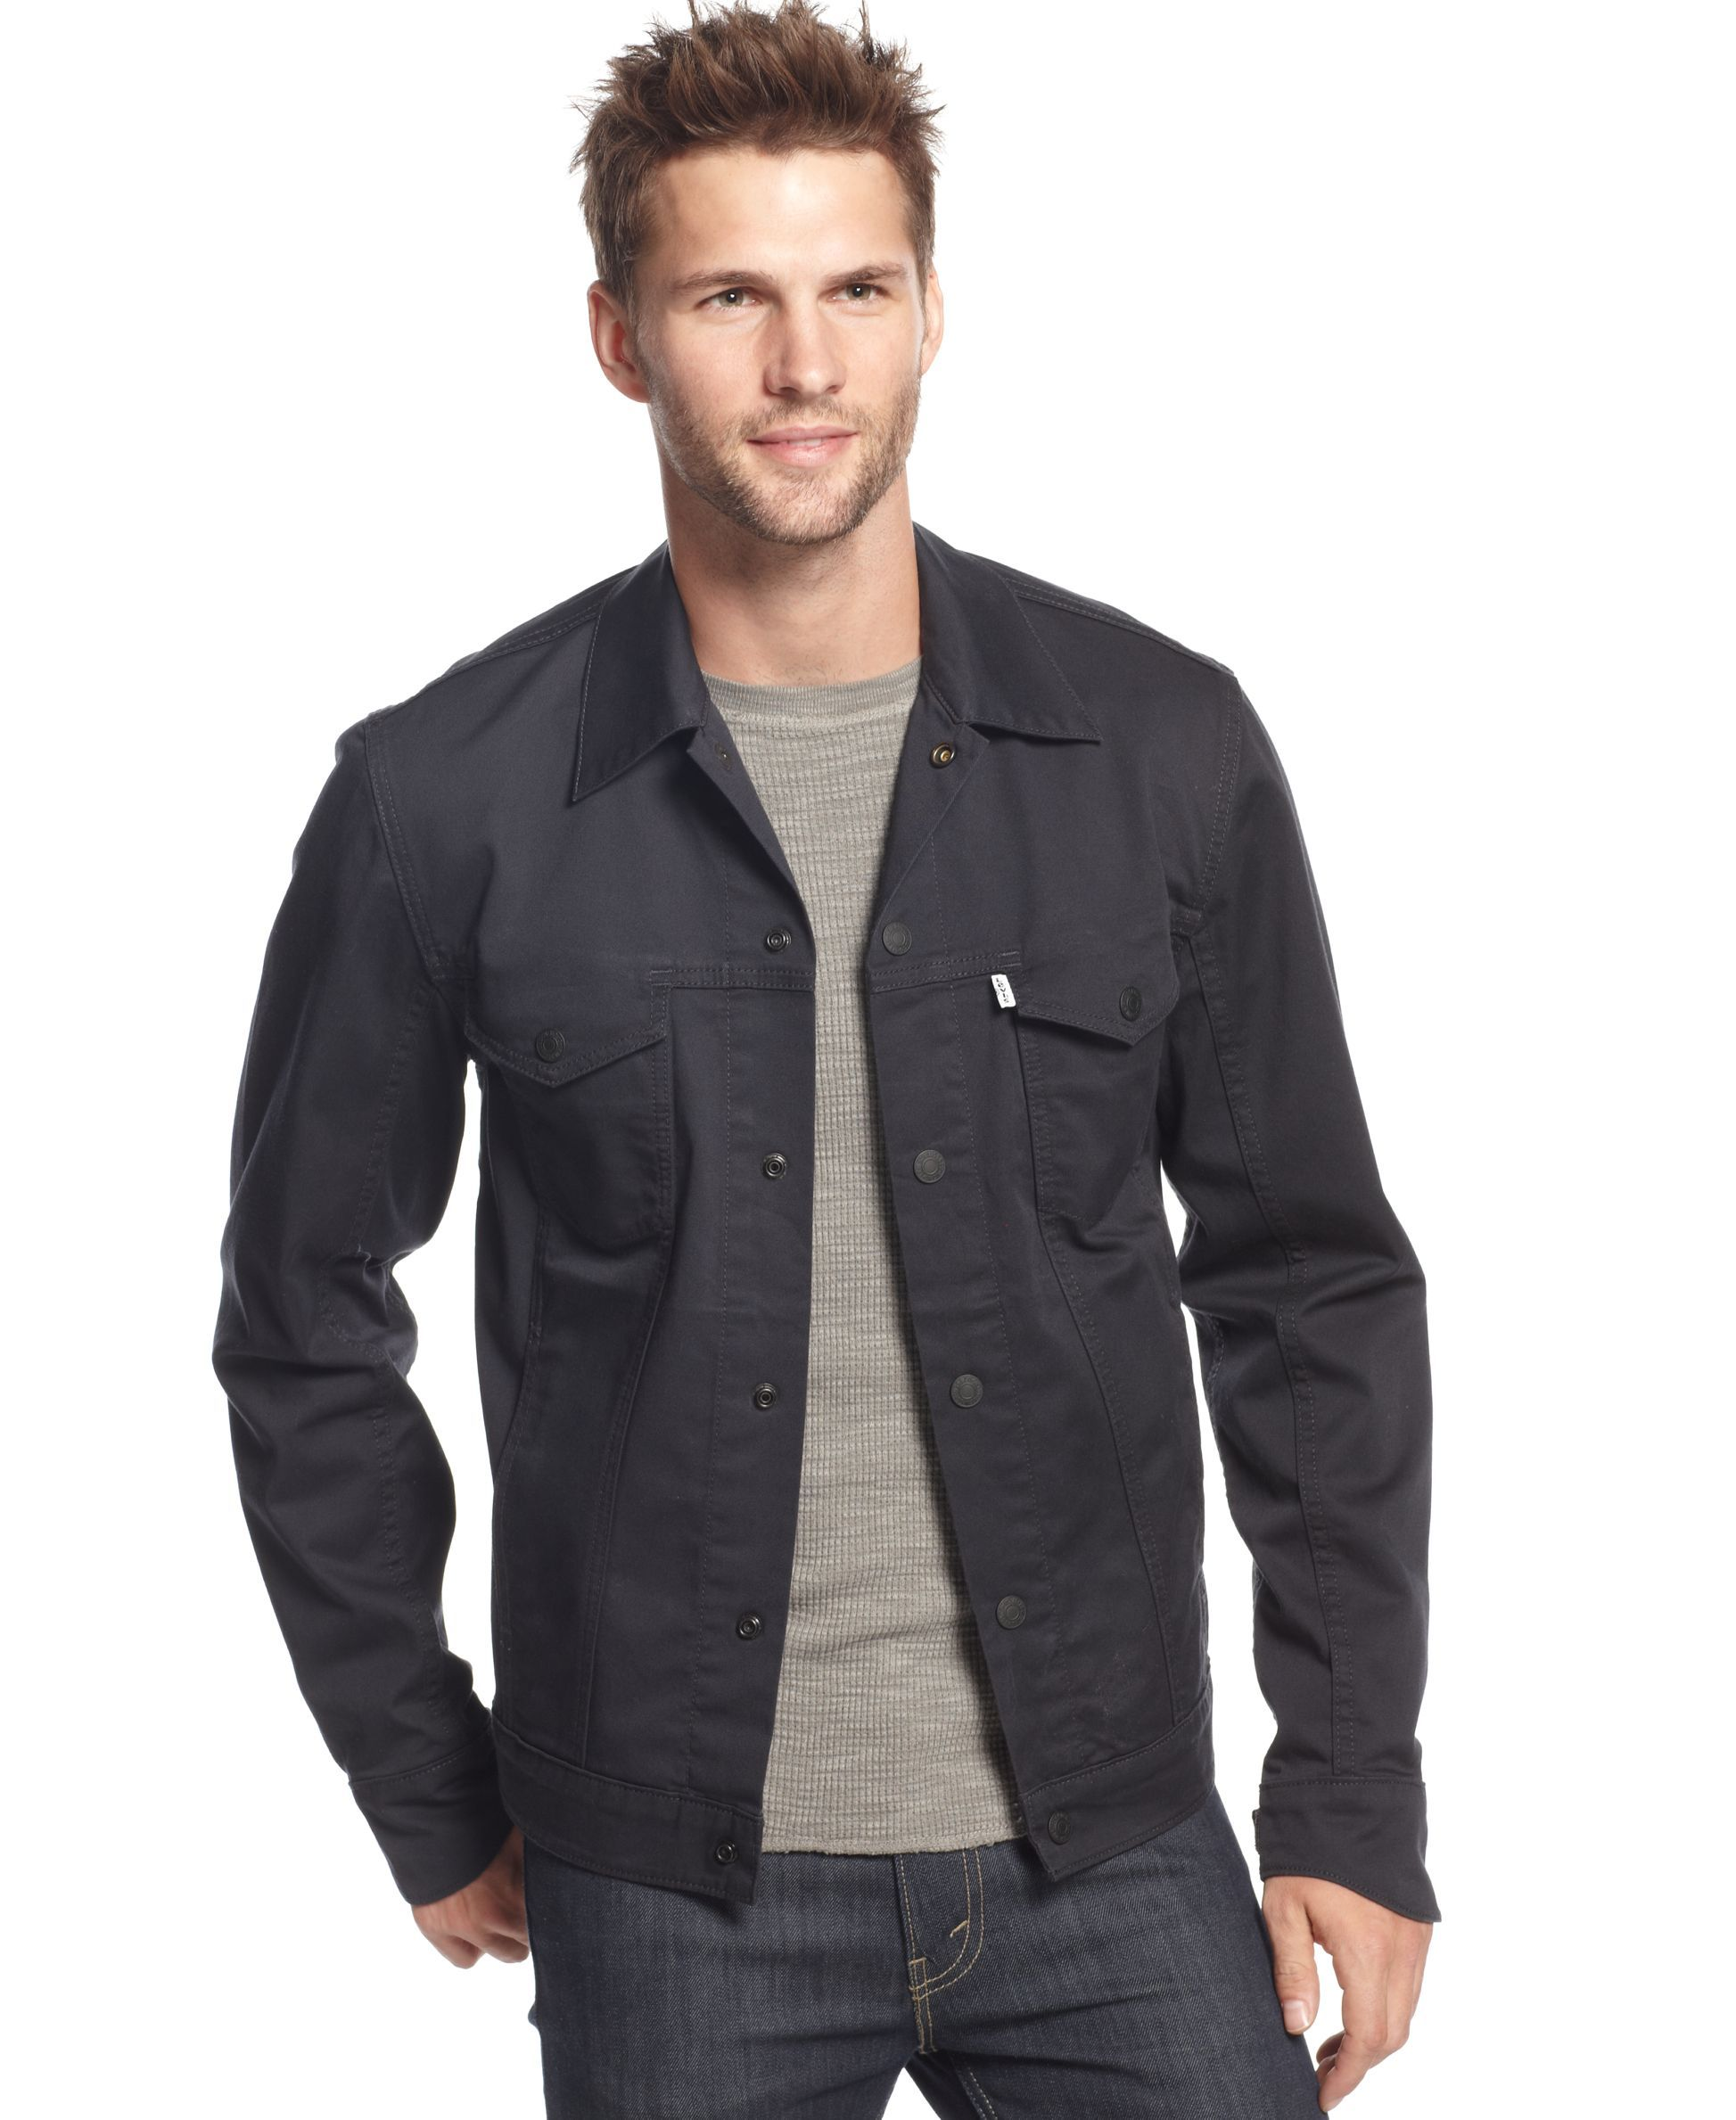 Levi's Commuter Common Blue Twill Trucker Jacket Trucker